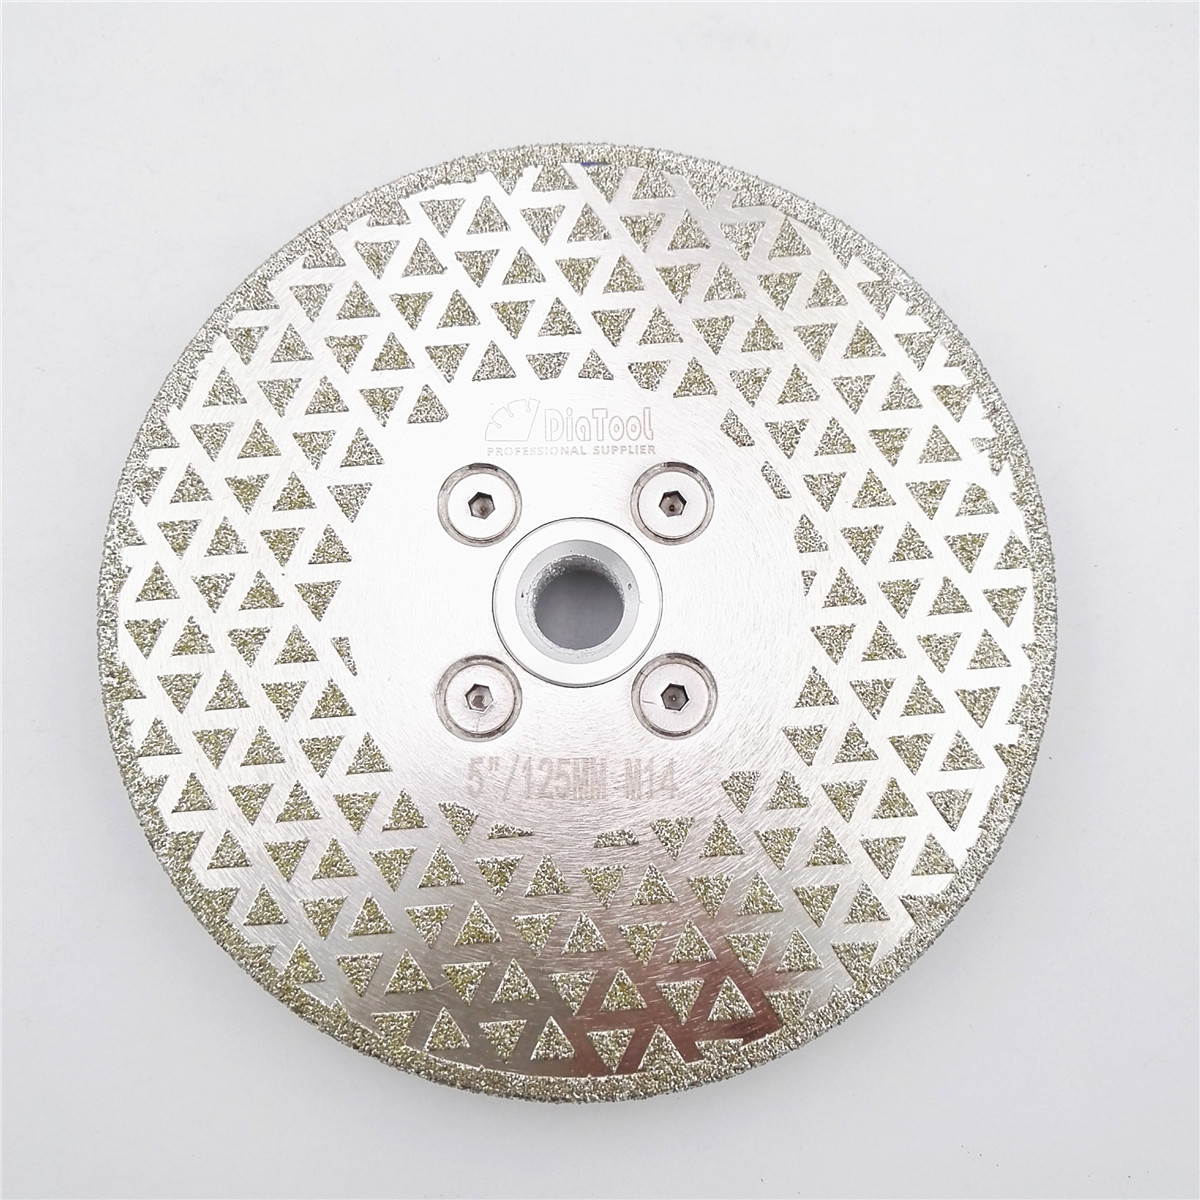 DIATOOL 5 electroplated diamond cutting and grinding disc granite marble with single grinding side M14 Flange Diamond blades цена